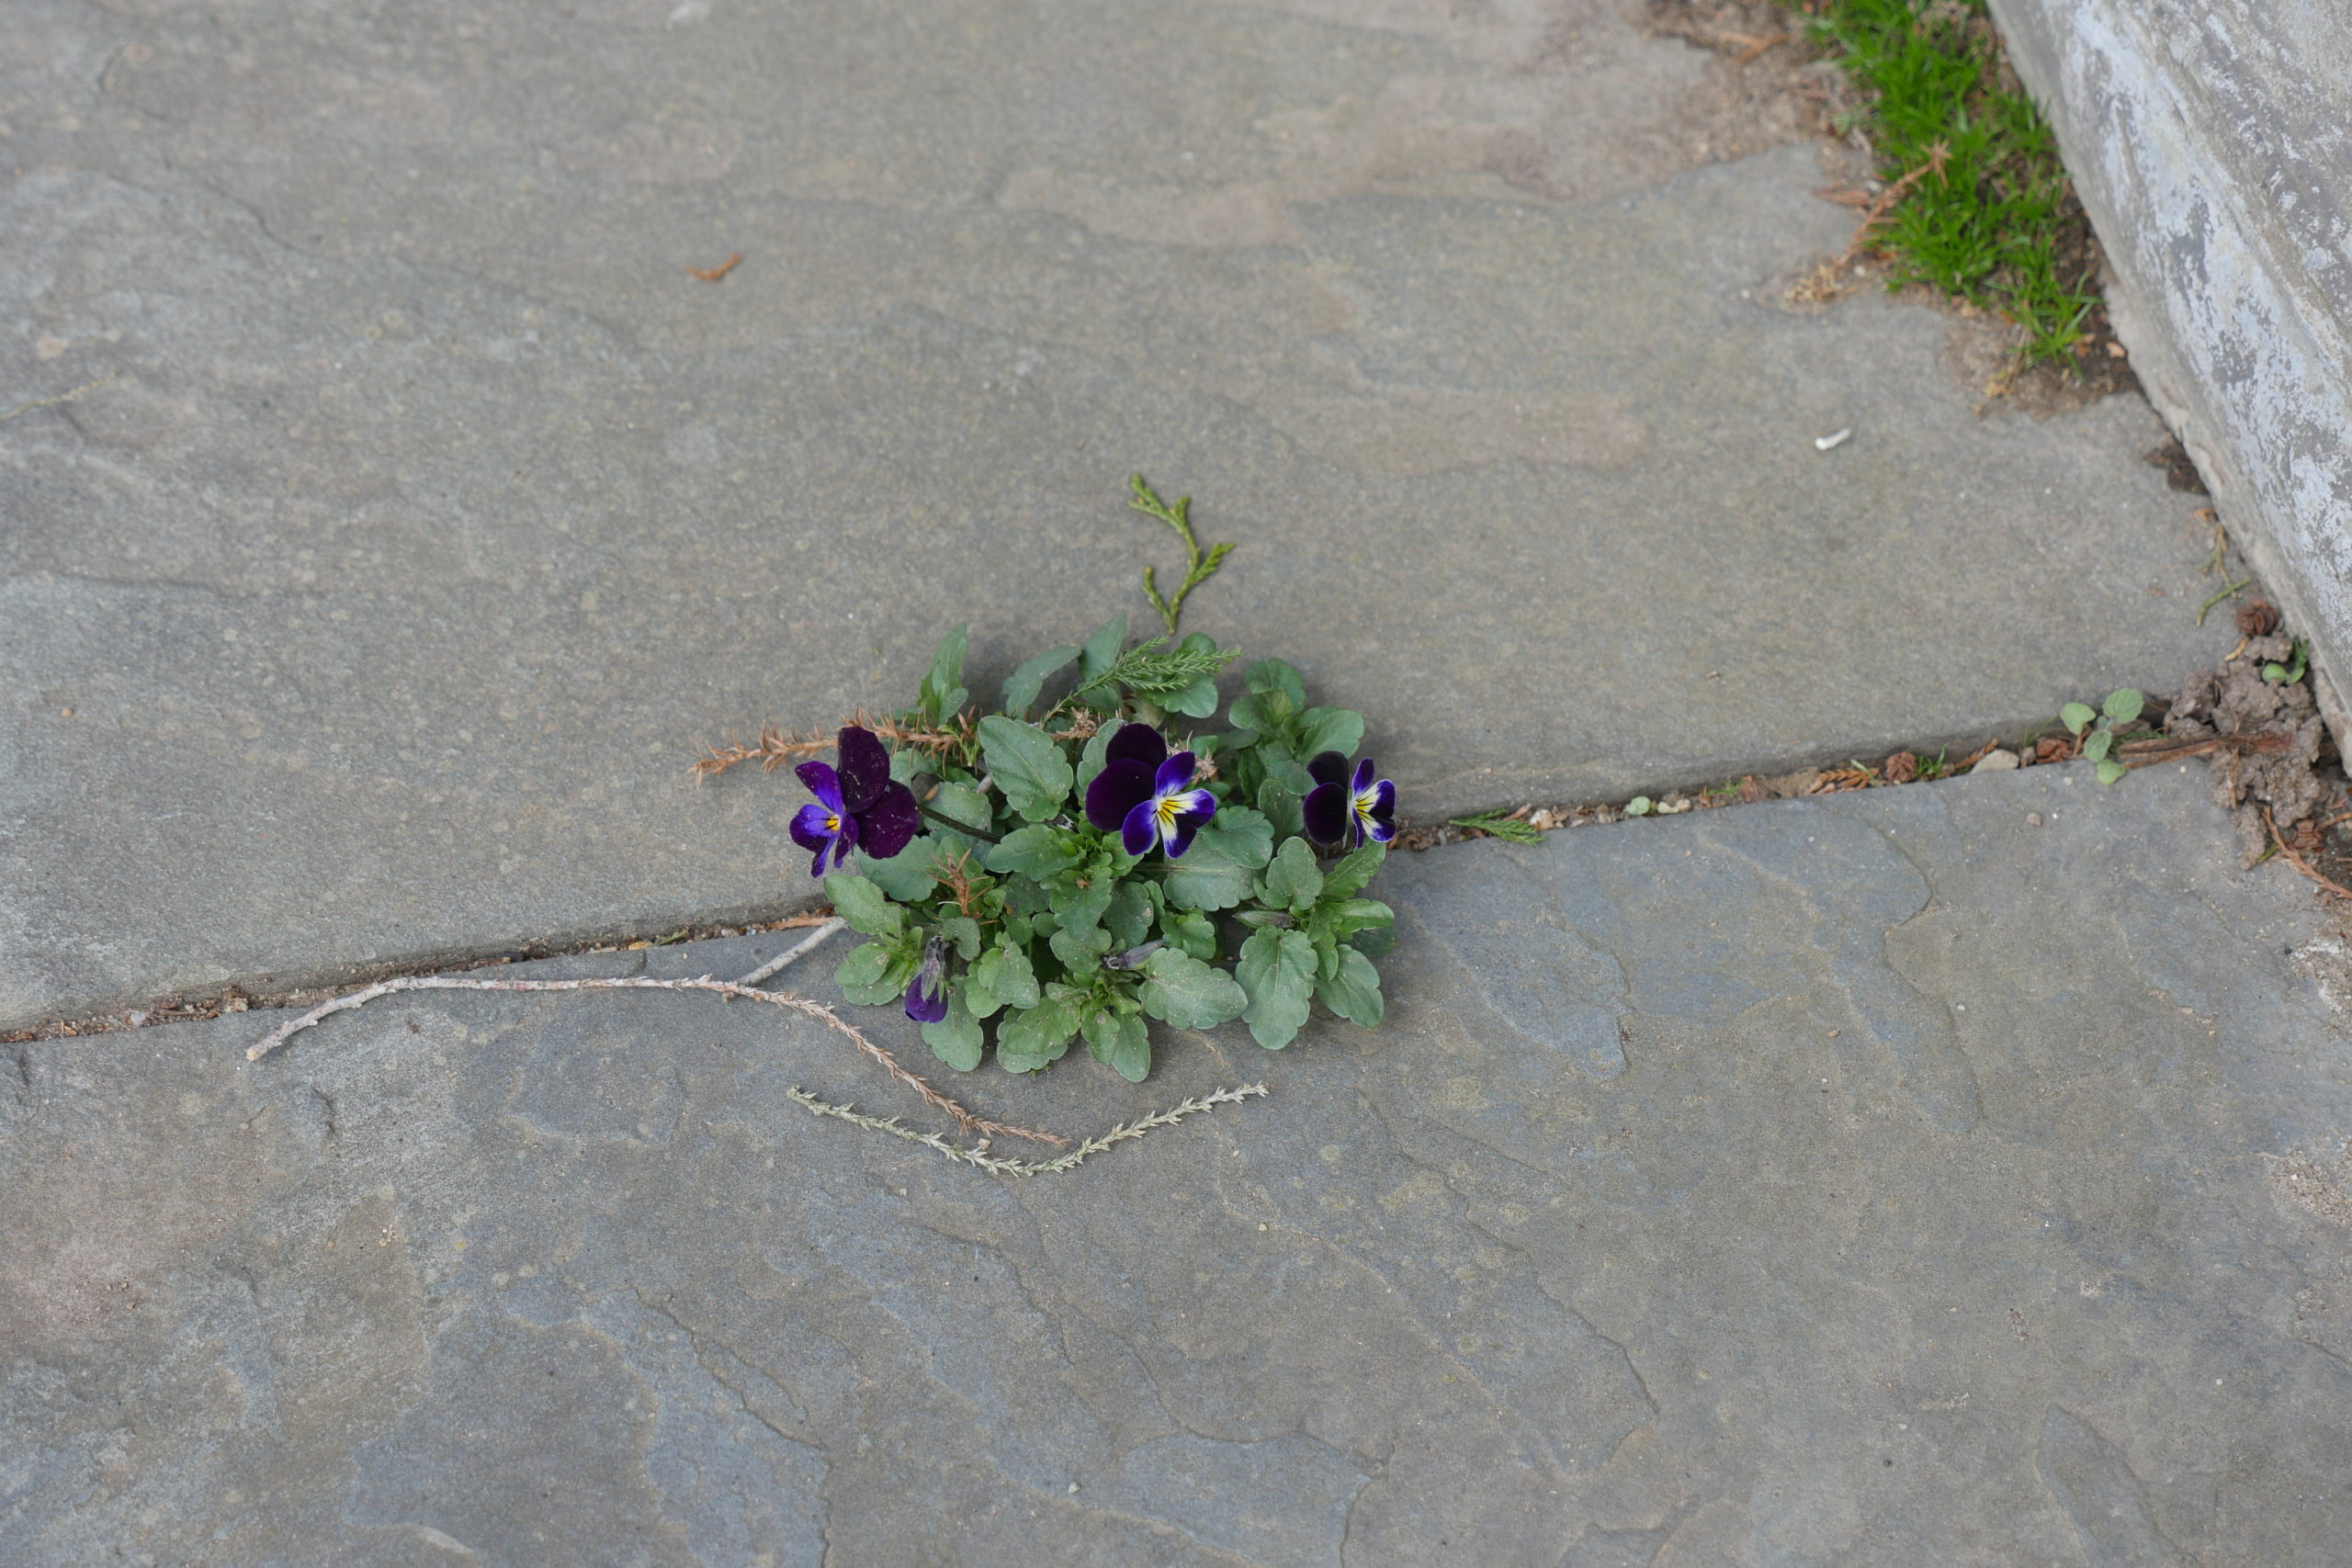 Emerging from between the cracks in patio pavers, this 3-inch plant of Viola Bowles Black was taken in late March.  In some areas it may flower sooner as the pavers tend to retain the daytime heat resulting in early blooms.